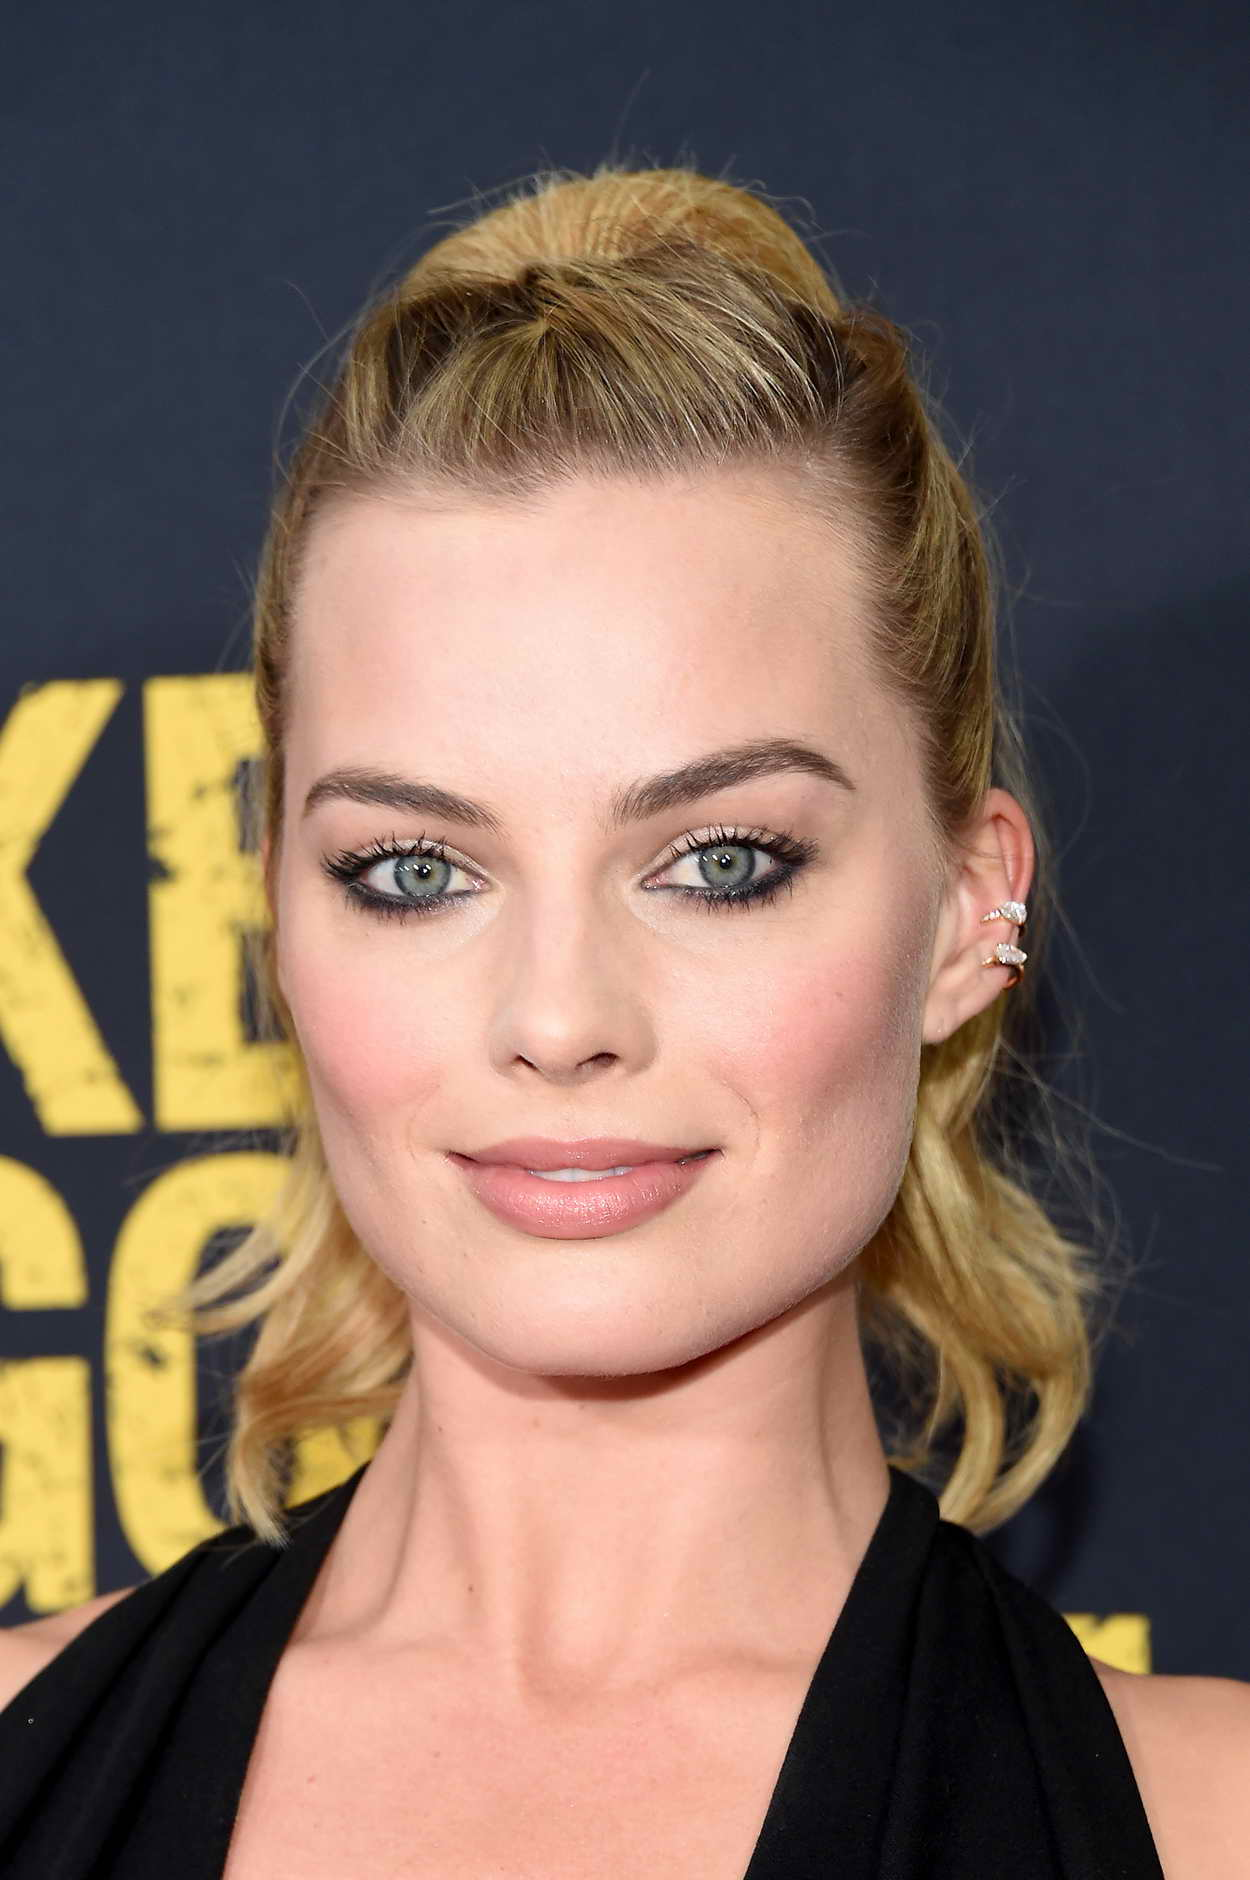 Margot Robbie At Whiskey Tango Foxtrot Premiere In Nyc 03